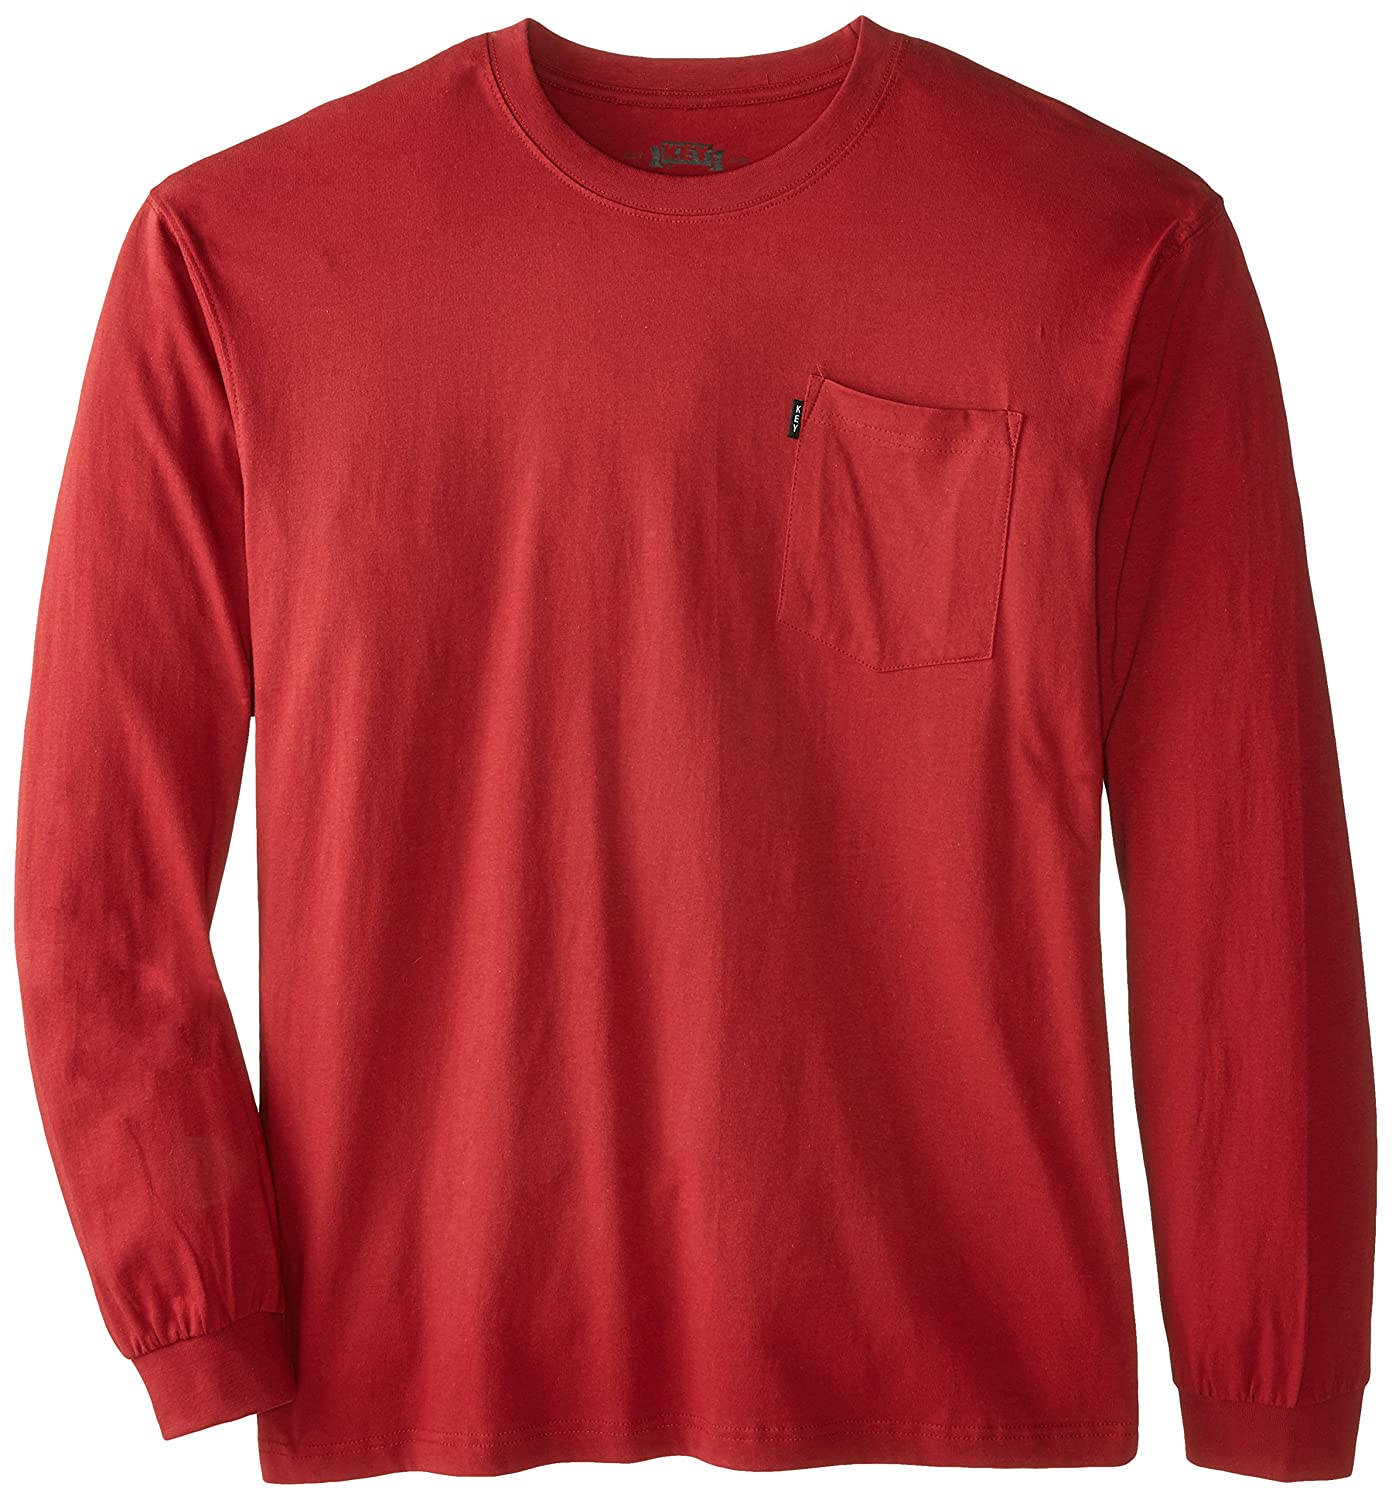 Key Apparel Men's Big-Tall Heavyweight Long Sleeve Pocket T-Shirt 860B